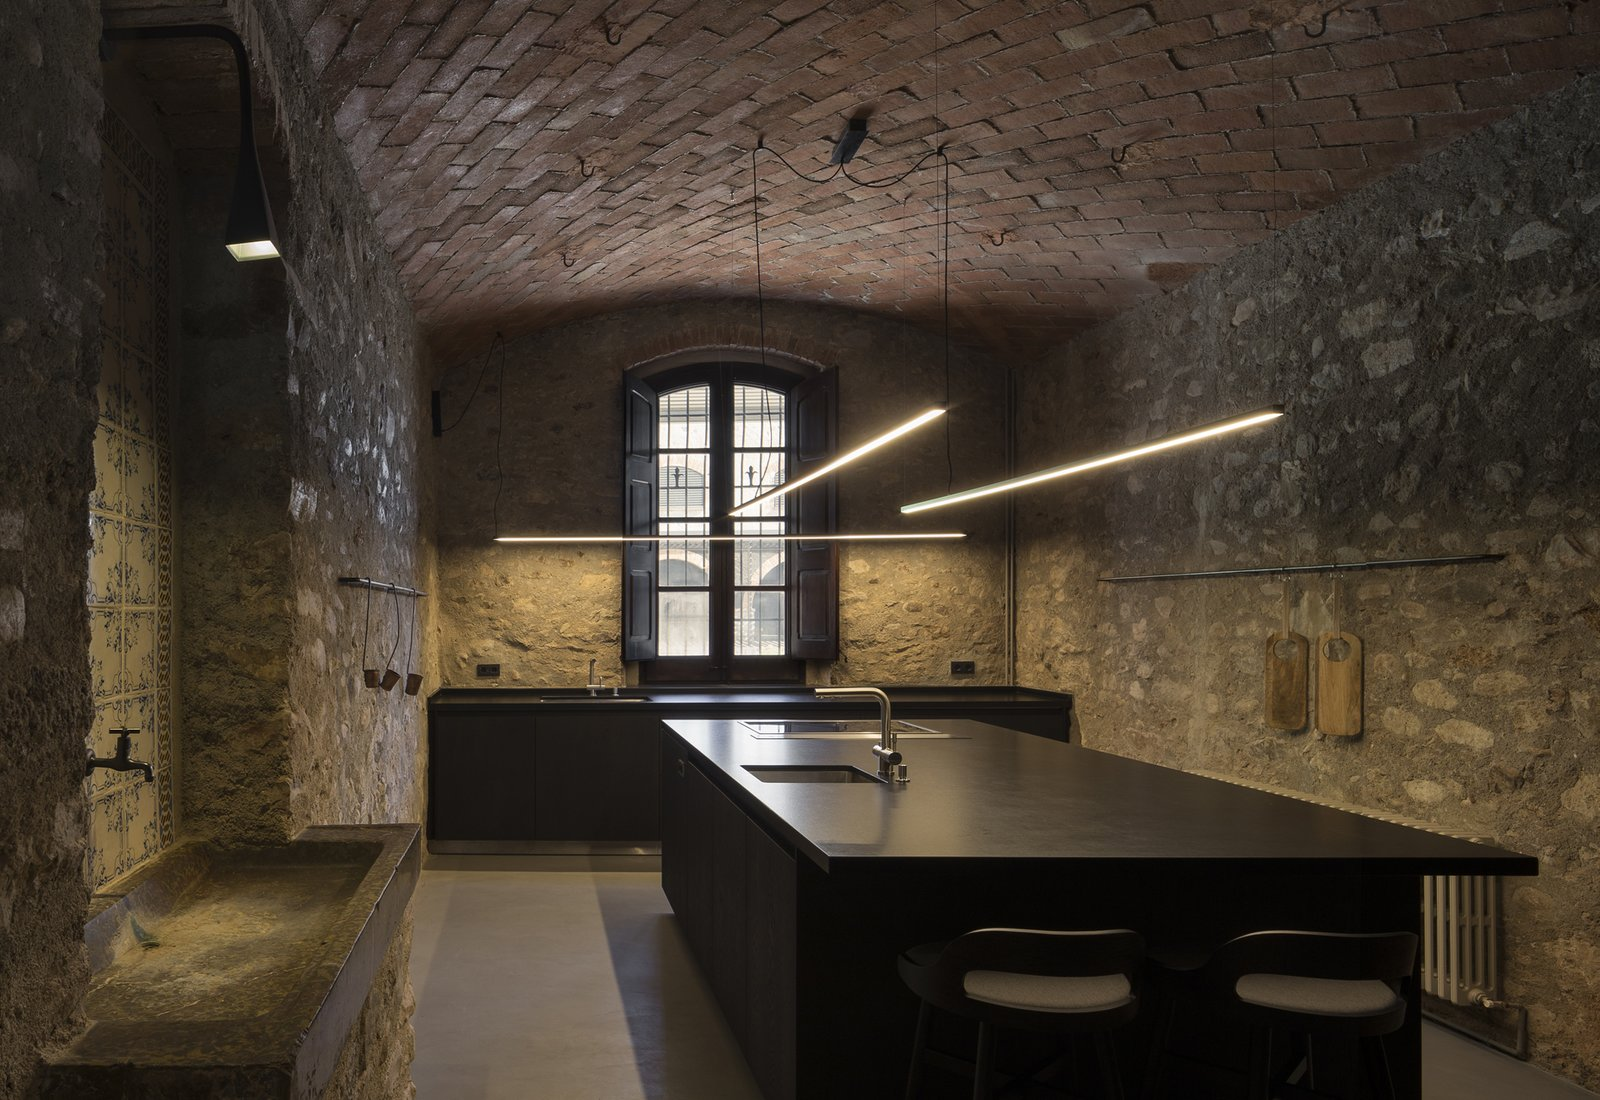 Kitchen, Range Hood, Wall, Concrete, Stone Tile, Undermount, Granite, Wood, Wood, and Pendant  Best Kitchen Concrete Undermount Wood Photos from Sant Martí House